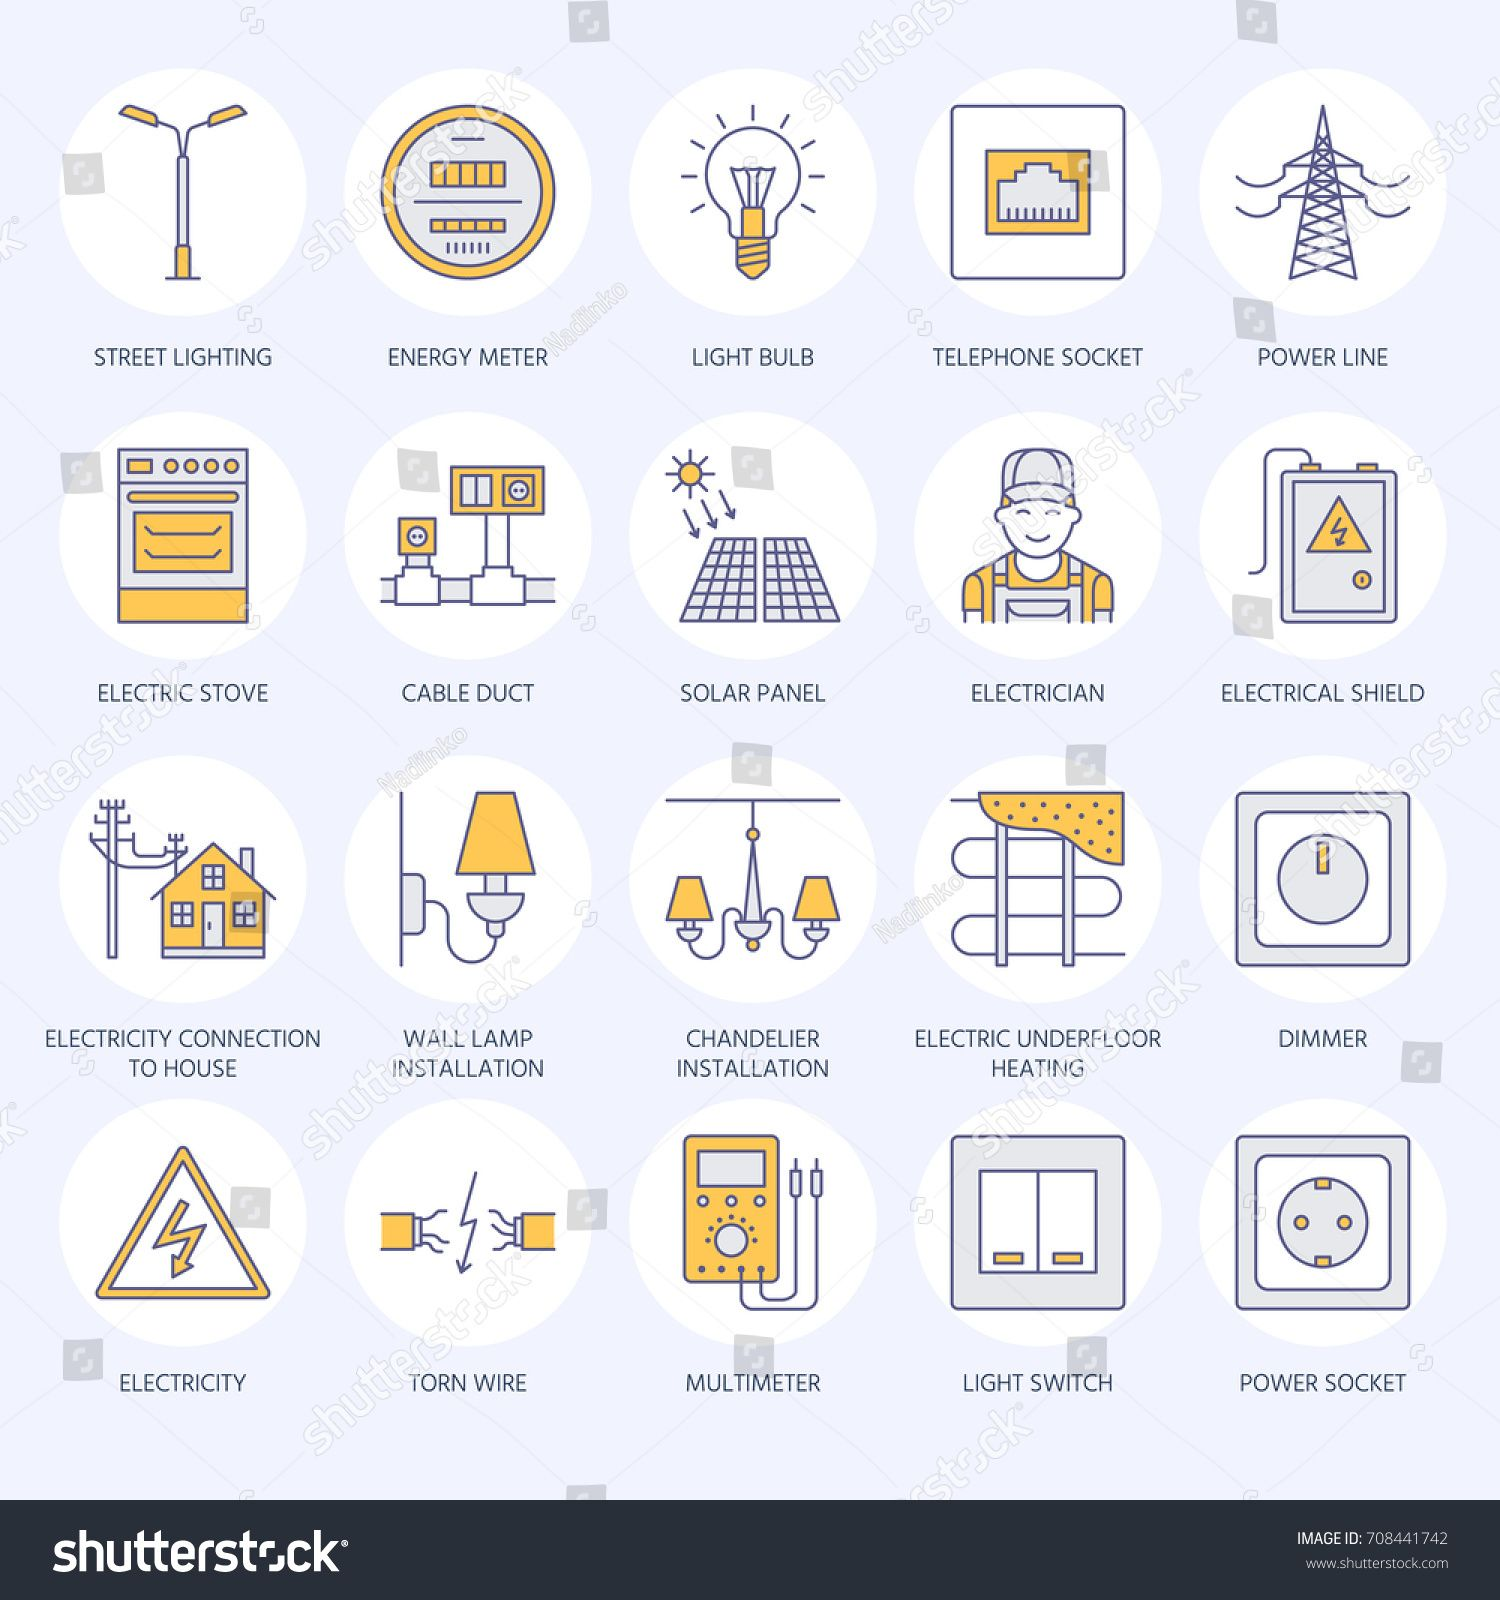 Electricity Engineering Vector Flat Line Icons Electrical Equipment In 2020 Basic Electrical Engineering Electrical Engineering Projects Electrical Engineering Quotes